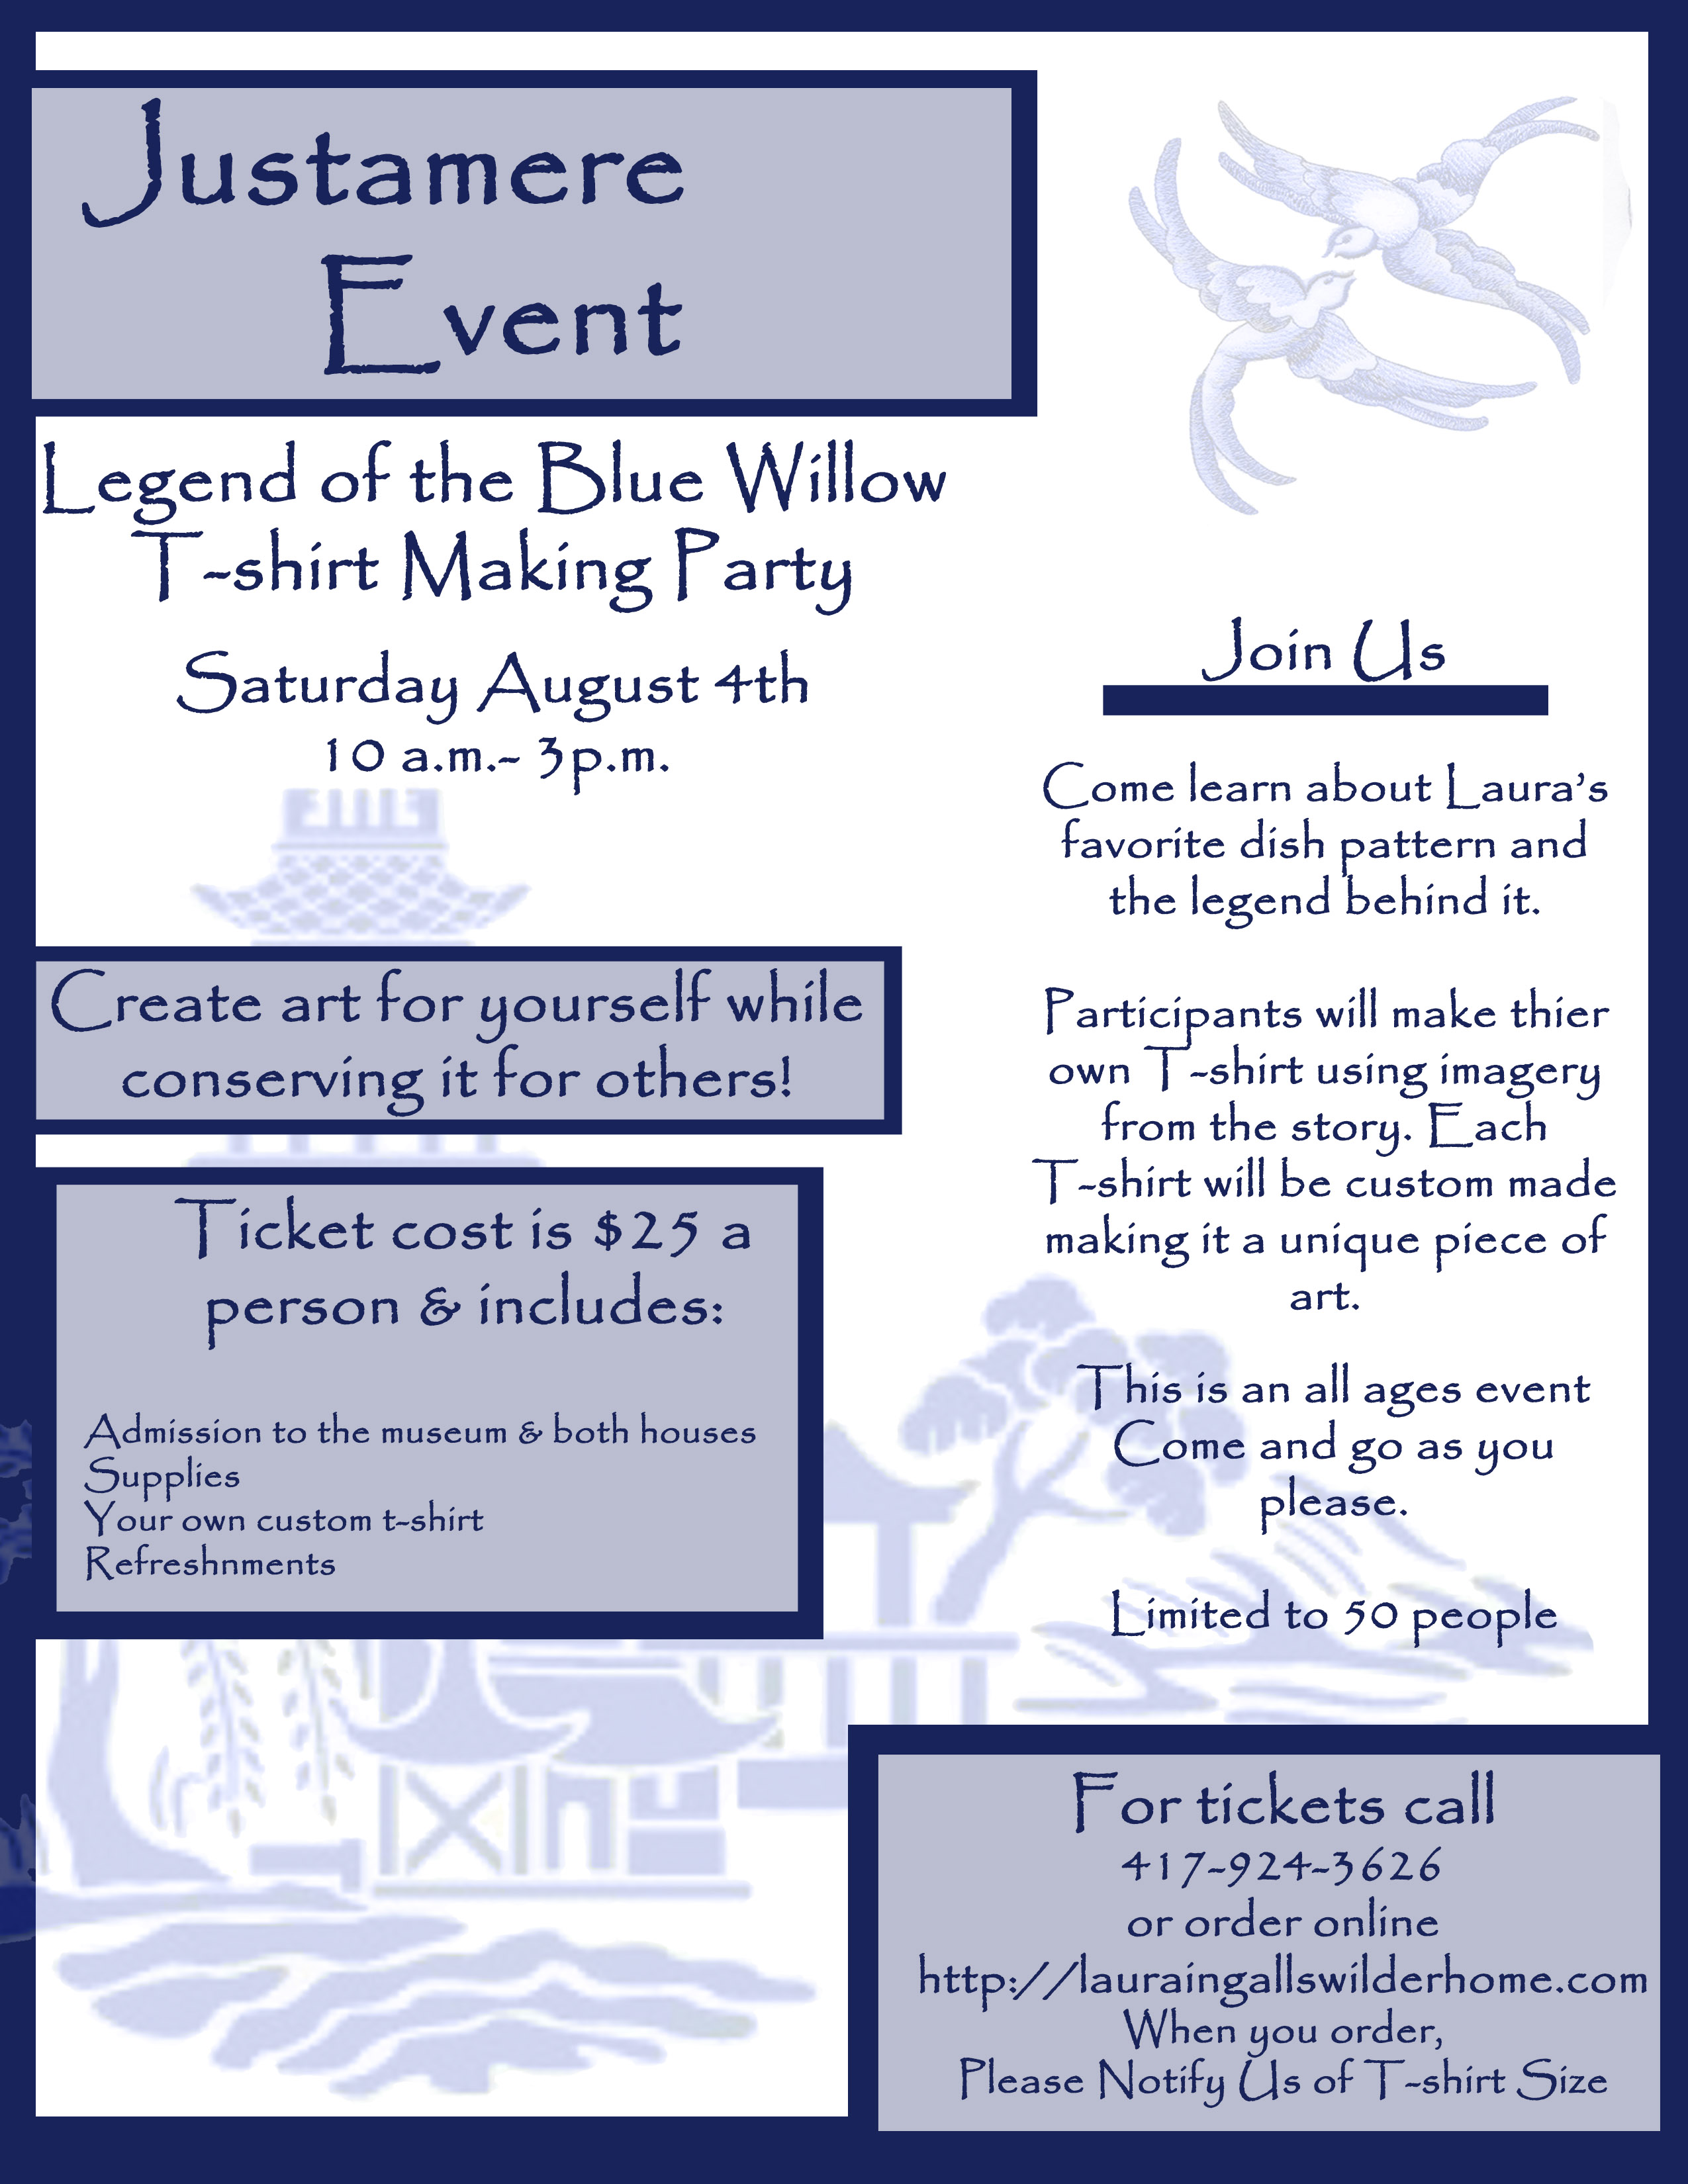 justamere event legend of the blue willow t shirt making party